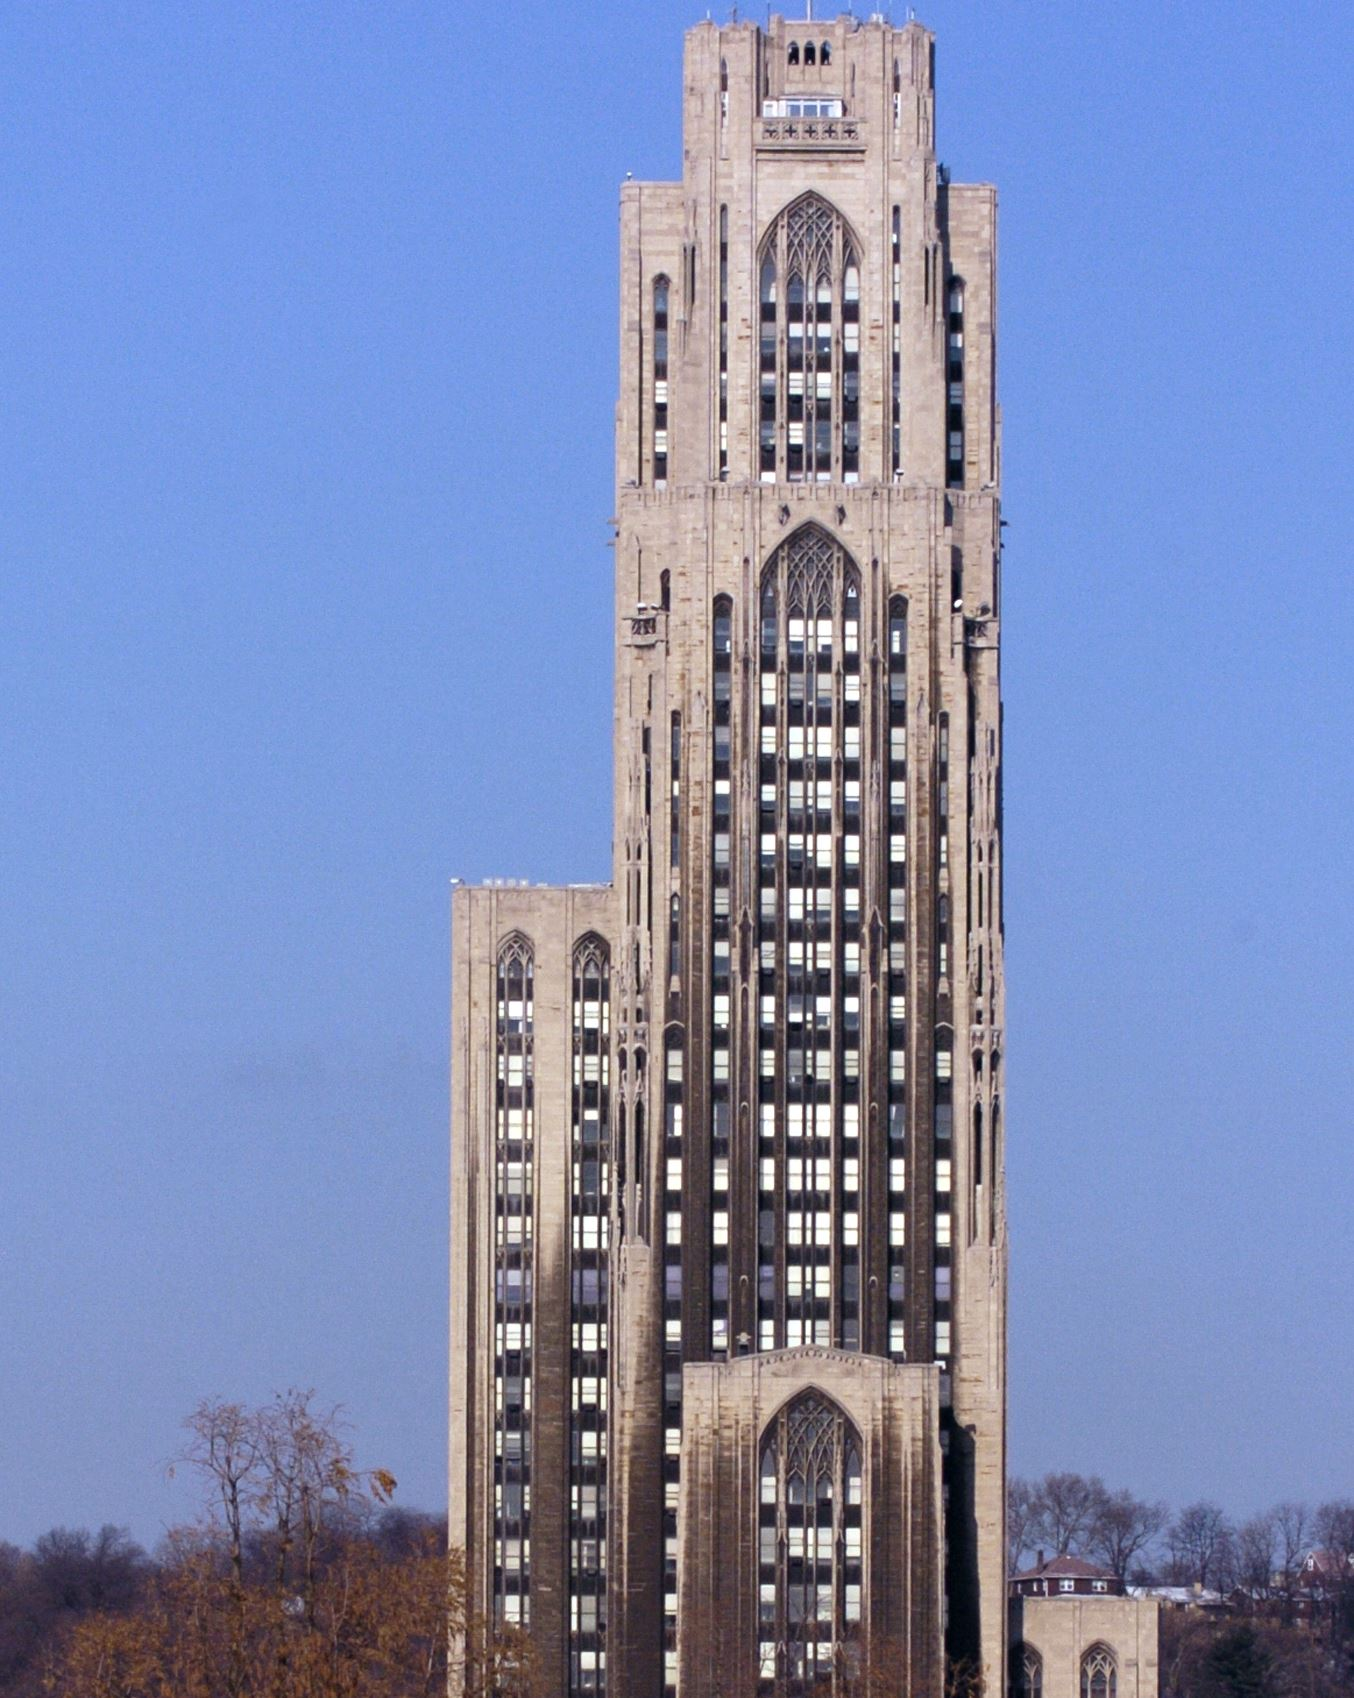 New school at Pitt aims to attract top talent